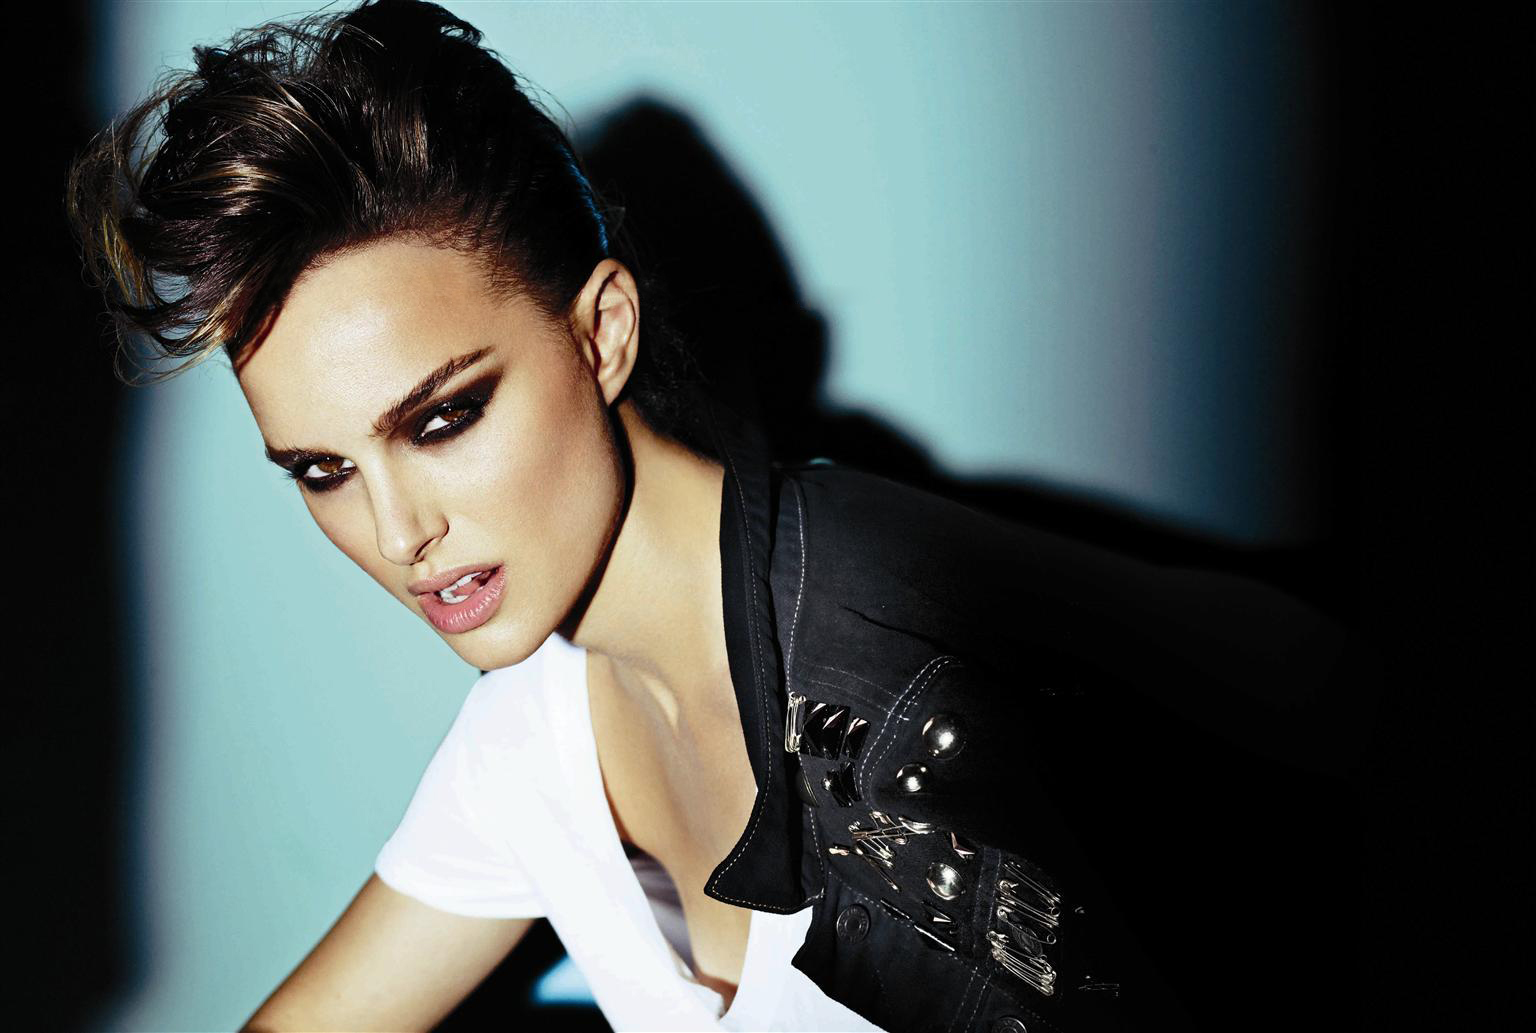 http://2.bp.blogspot.com/-Y7A5k6fauI4/T8UFEWvfzCI/AAAAAAAABOY/oBppe2N6k3Q/s1600/Mario-Testino-for-V-Magazine-Without-Watermark-natalie-portman-26894167-1536-1033.jpg